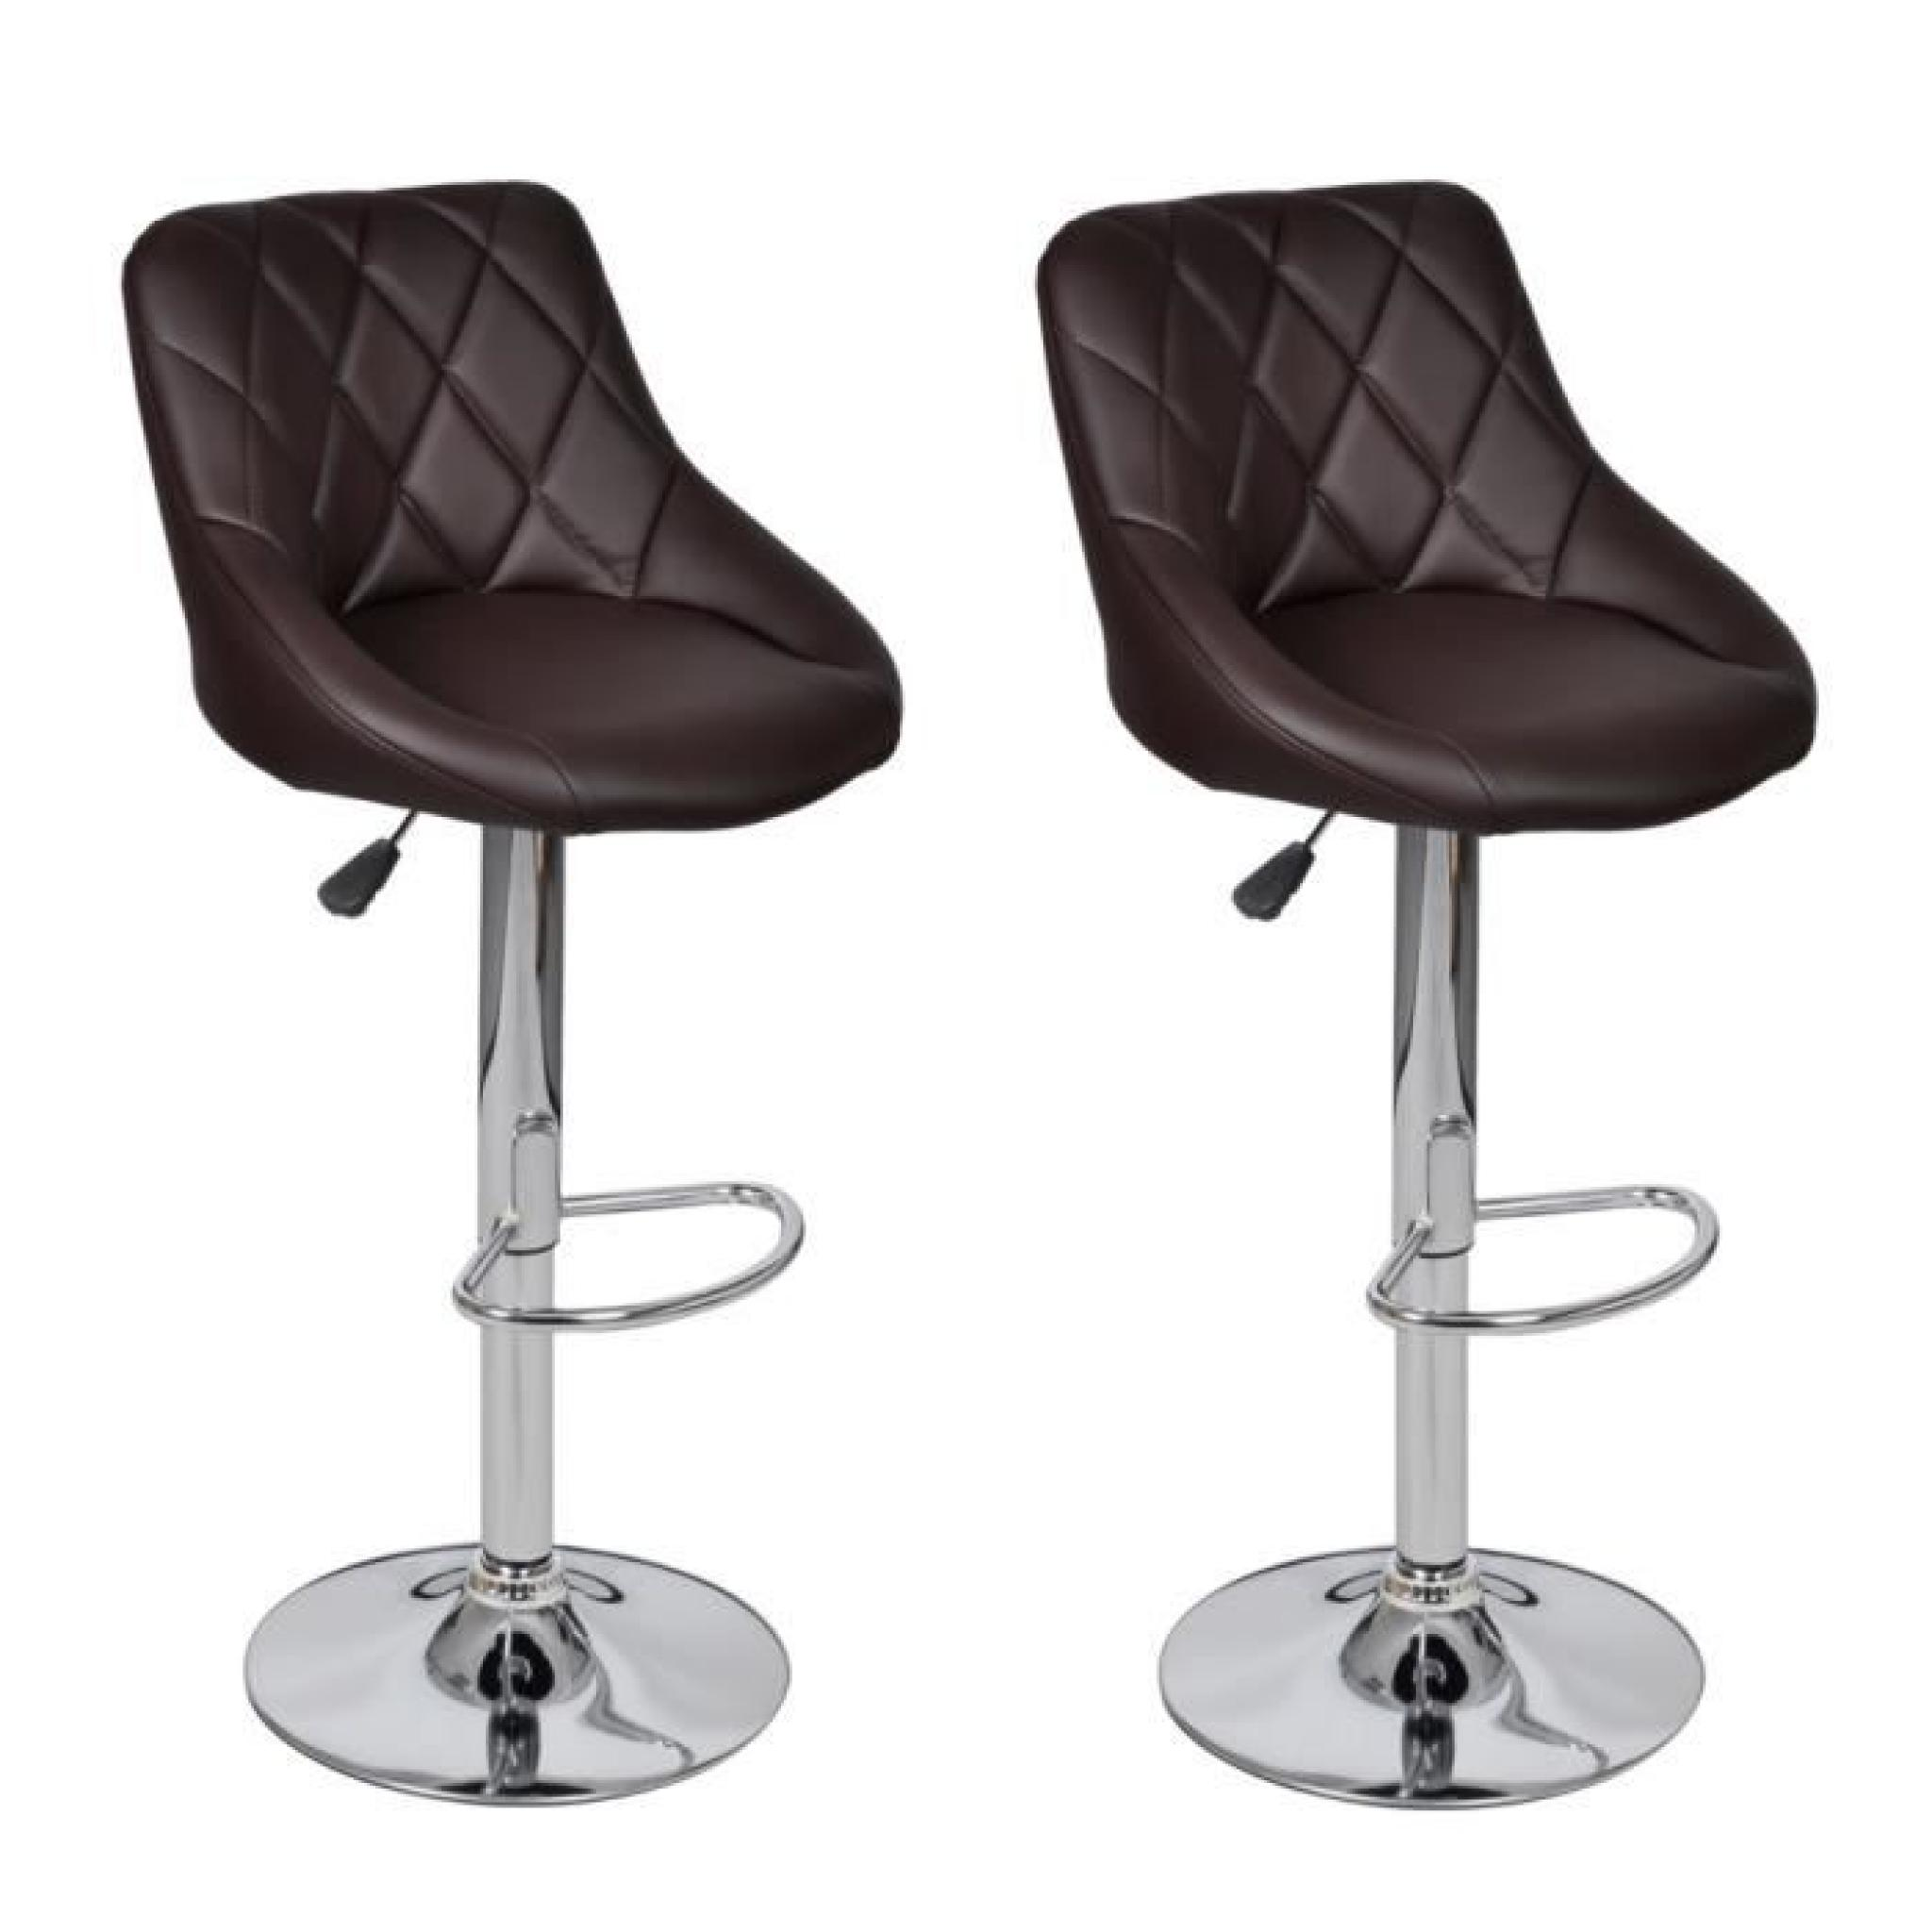 lot de 2 tabourets de bar marron clair design moderne stylashop achat vente tabouret de bar. Black Bedroom Furniture Sets. Home Design Ideas